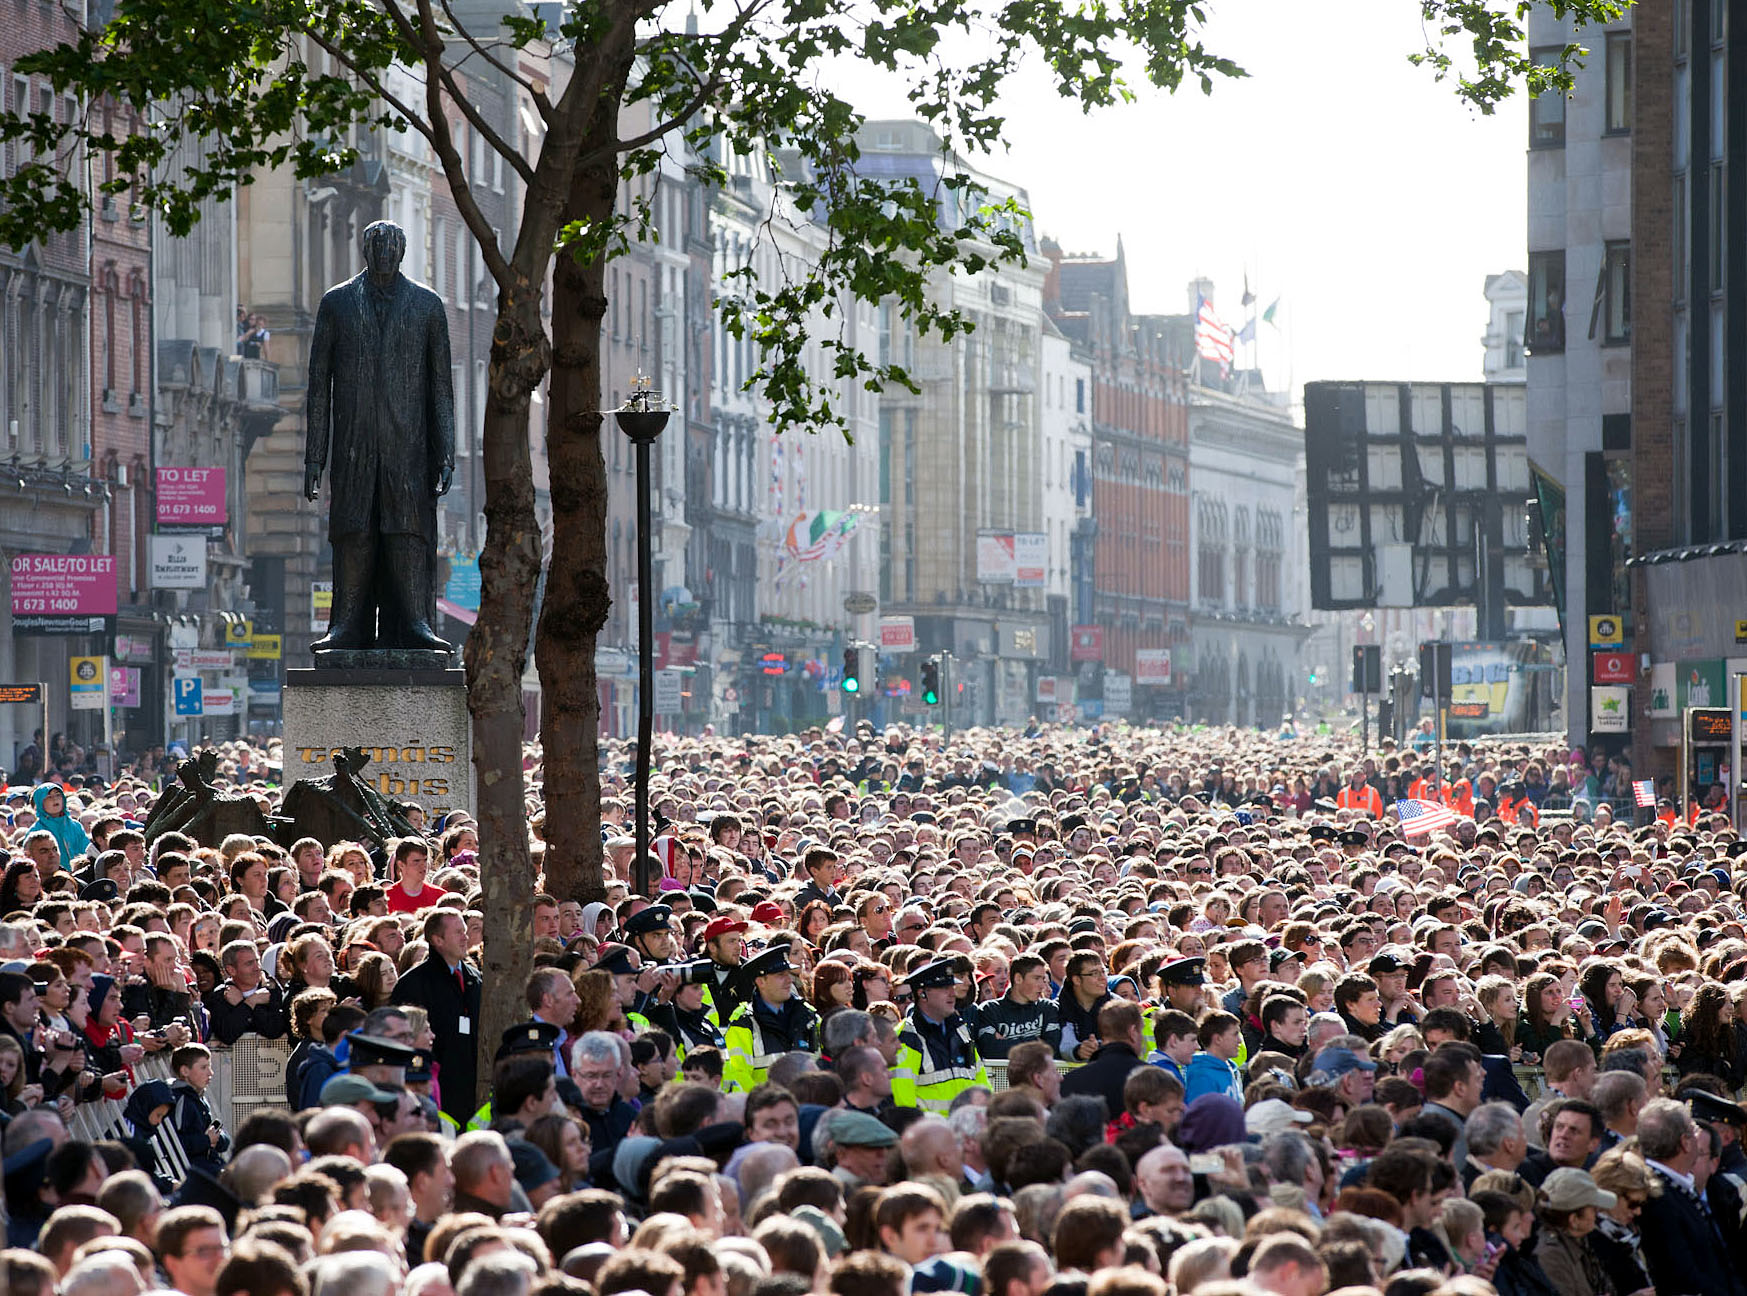 The Crowd at College Green in Dublin, Ireland, to Welcome President Barack Obama and First Lady Michelle Obama